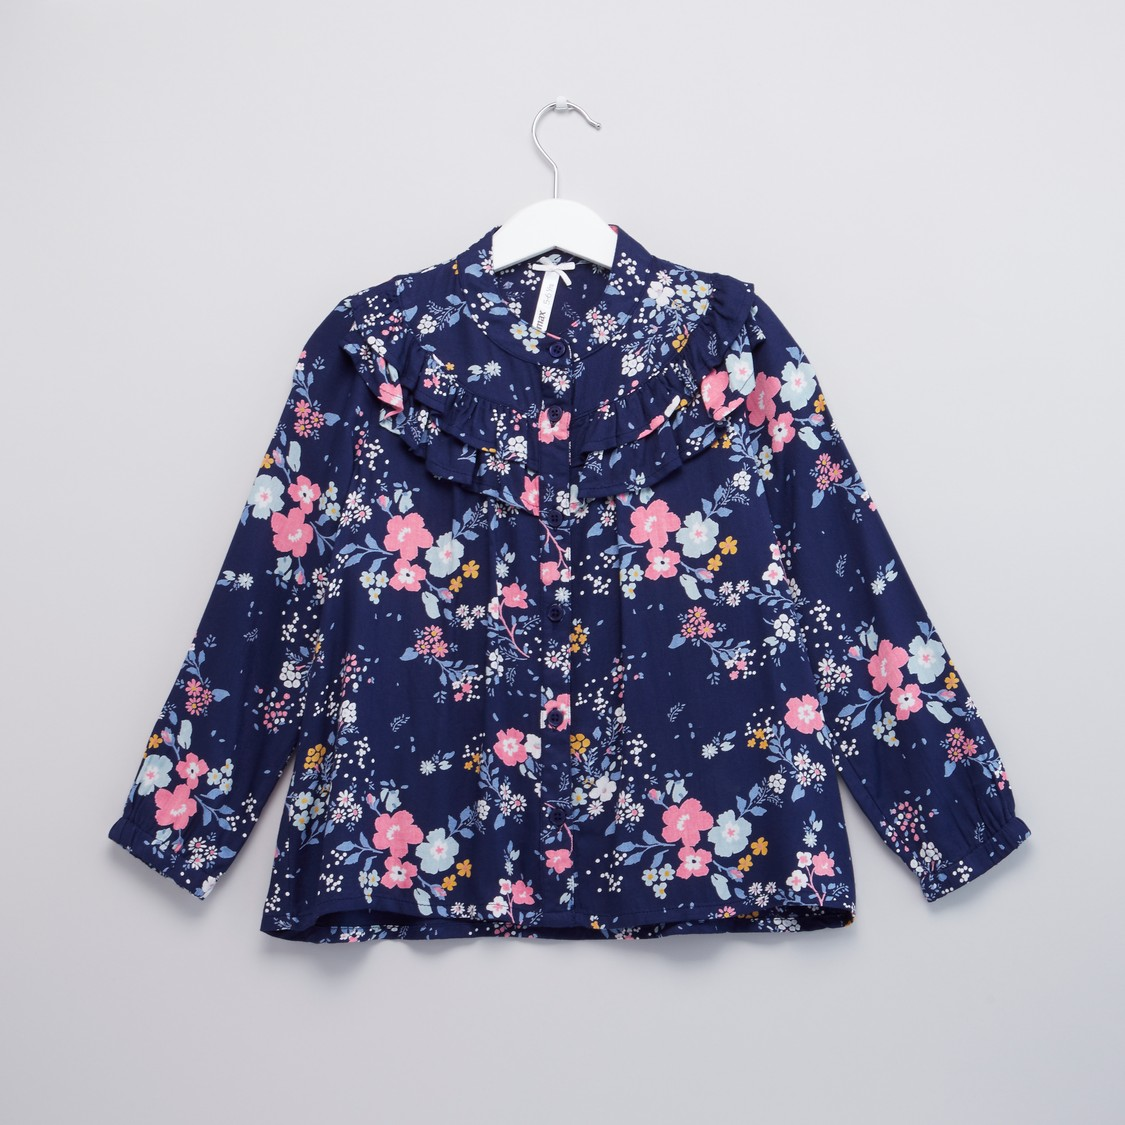 Floral Printed Button Through Top with Long Sleeves and Frill Detail